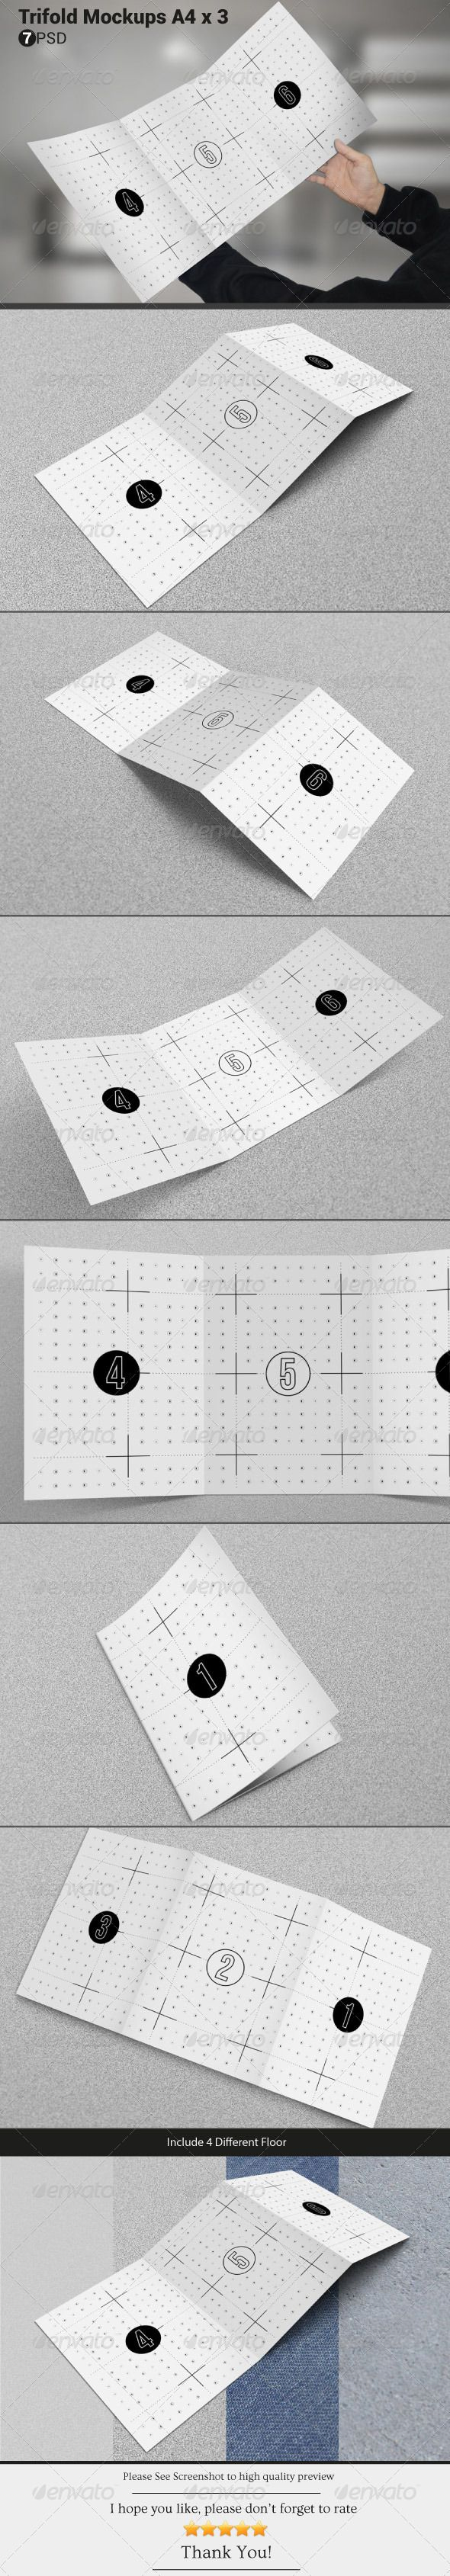 Trifold Mockups A4 | Download: http://graphicriver.net/item/trifold-mockups-a4-x-3/6712574?ref=ksioks